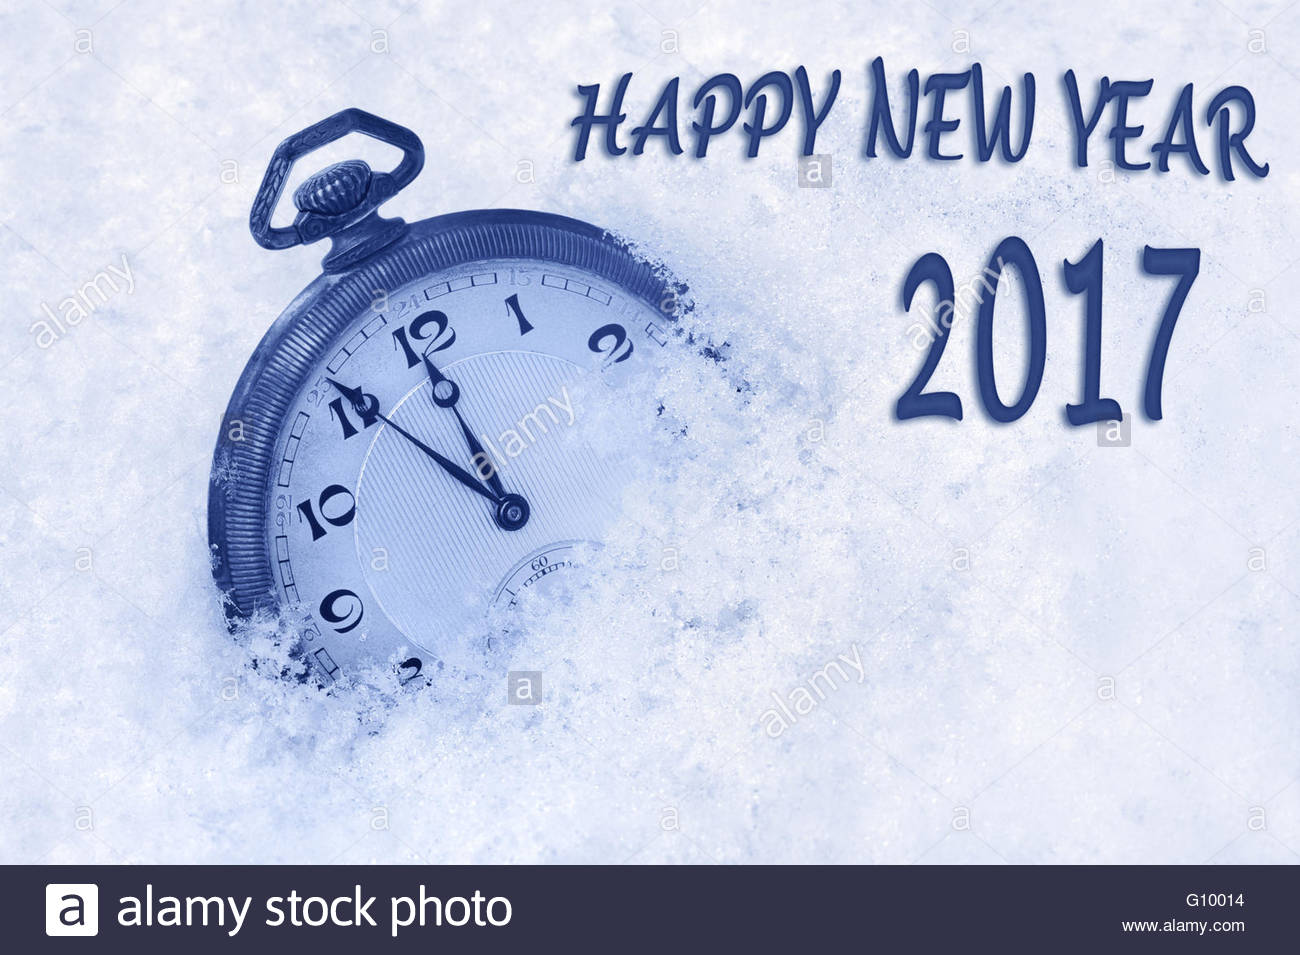 happy new year 2017 greeting in english language greeting card pocket watch in snow greeting card 2017